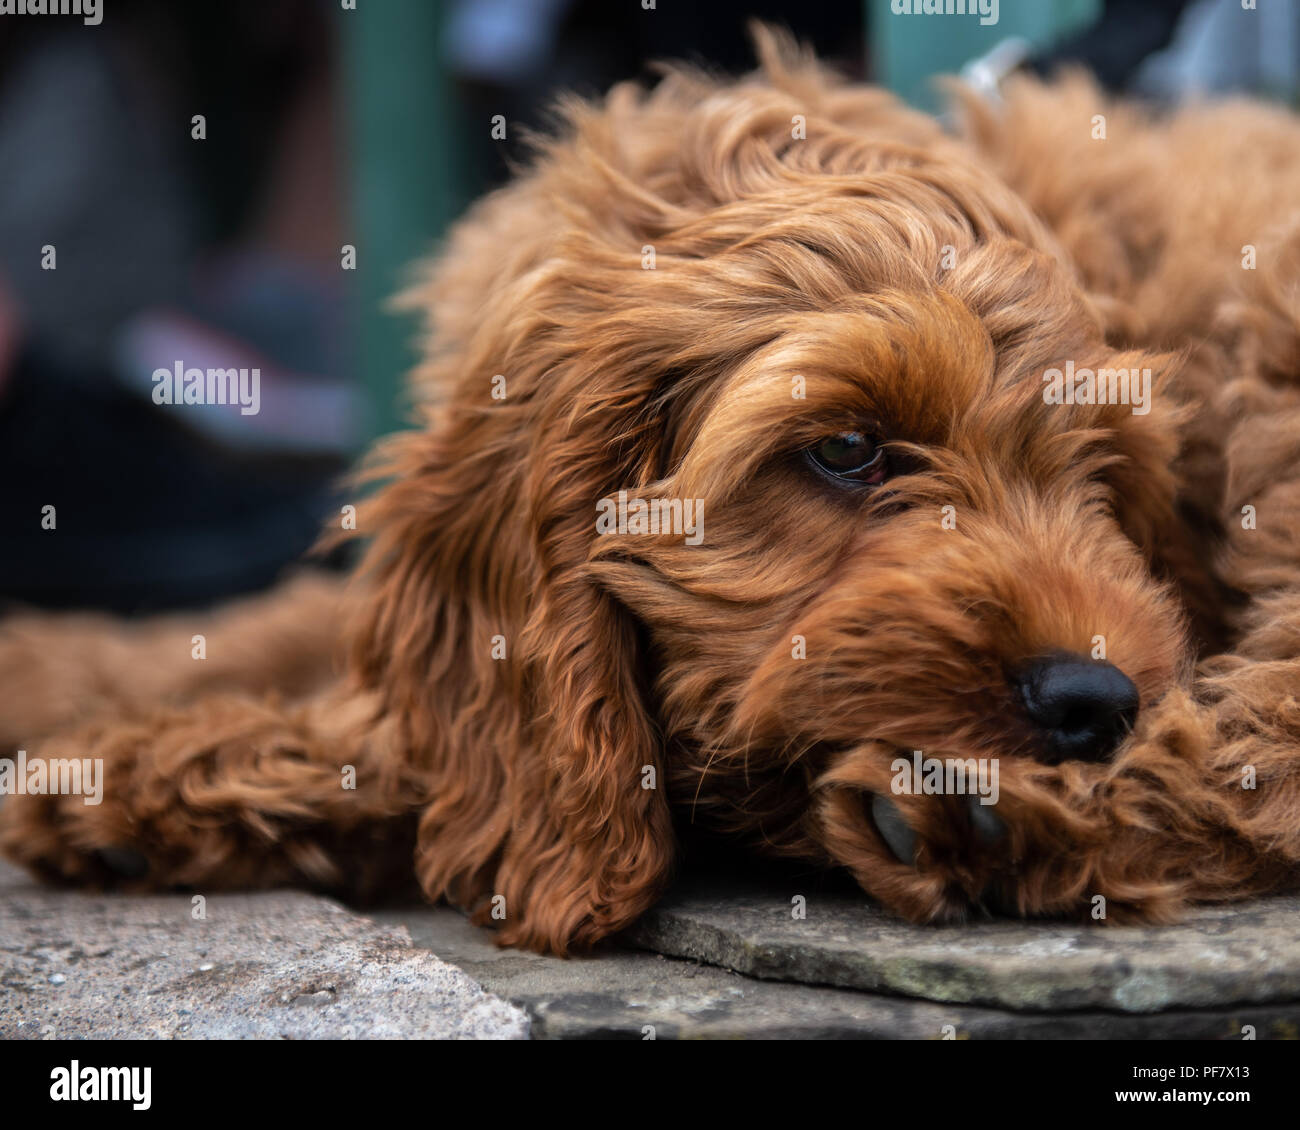 A young red cockapoo puppy lying relaxing on paving in the garden on a sunny day with a watching eye of activities nearby - Stock Image